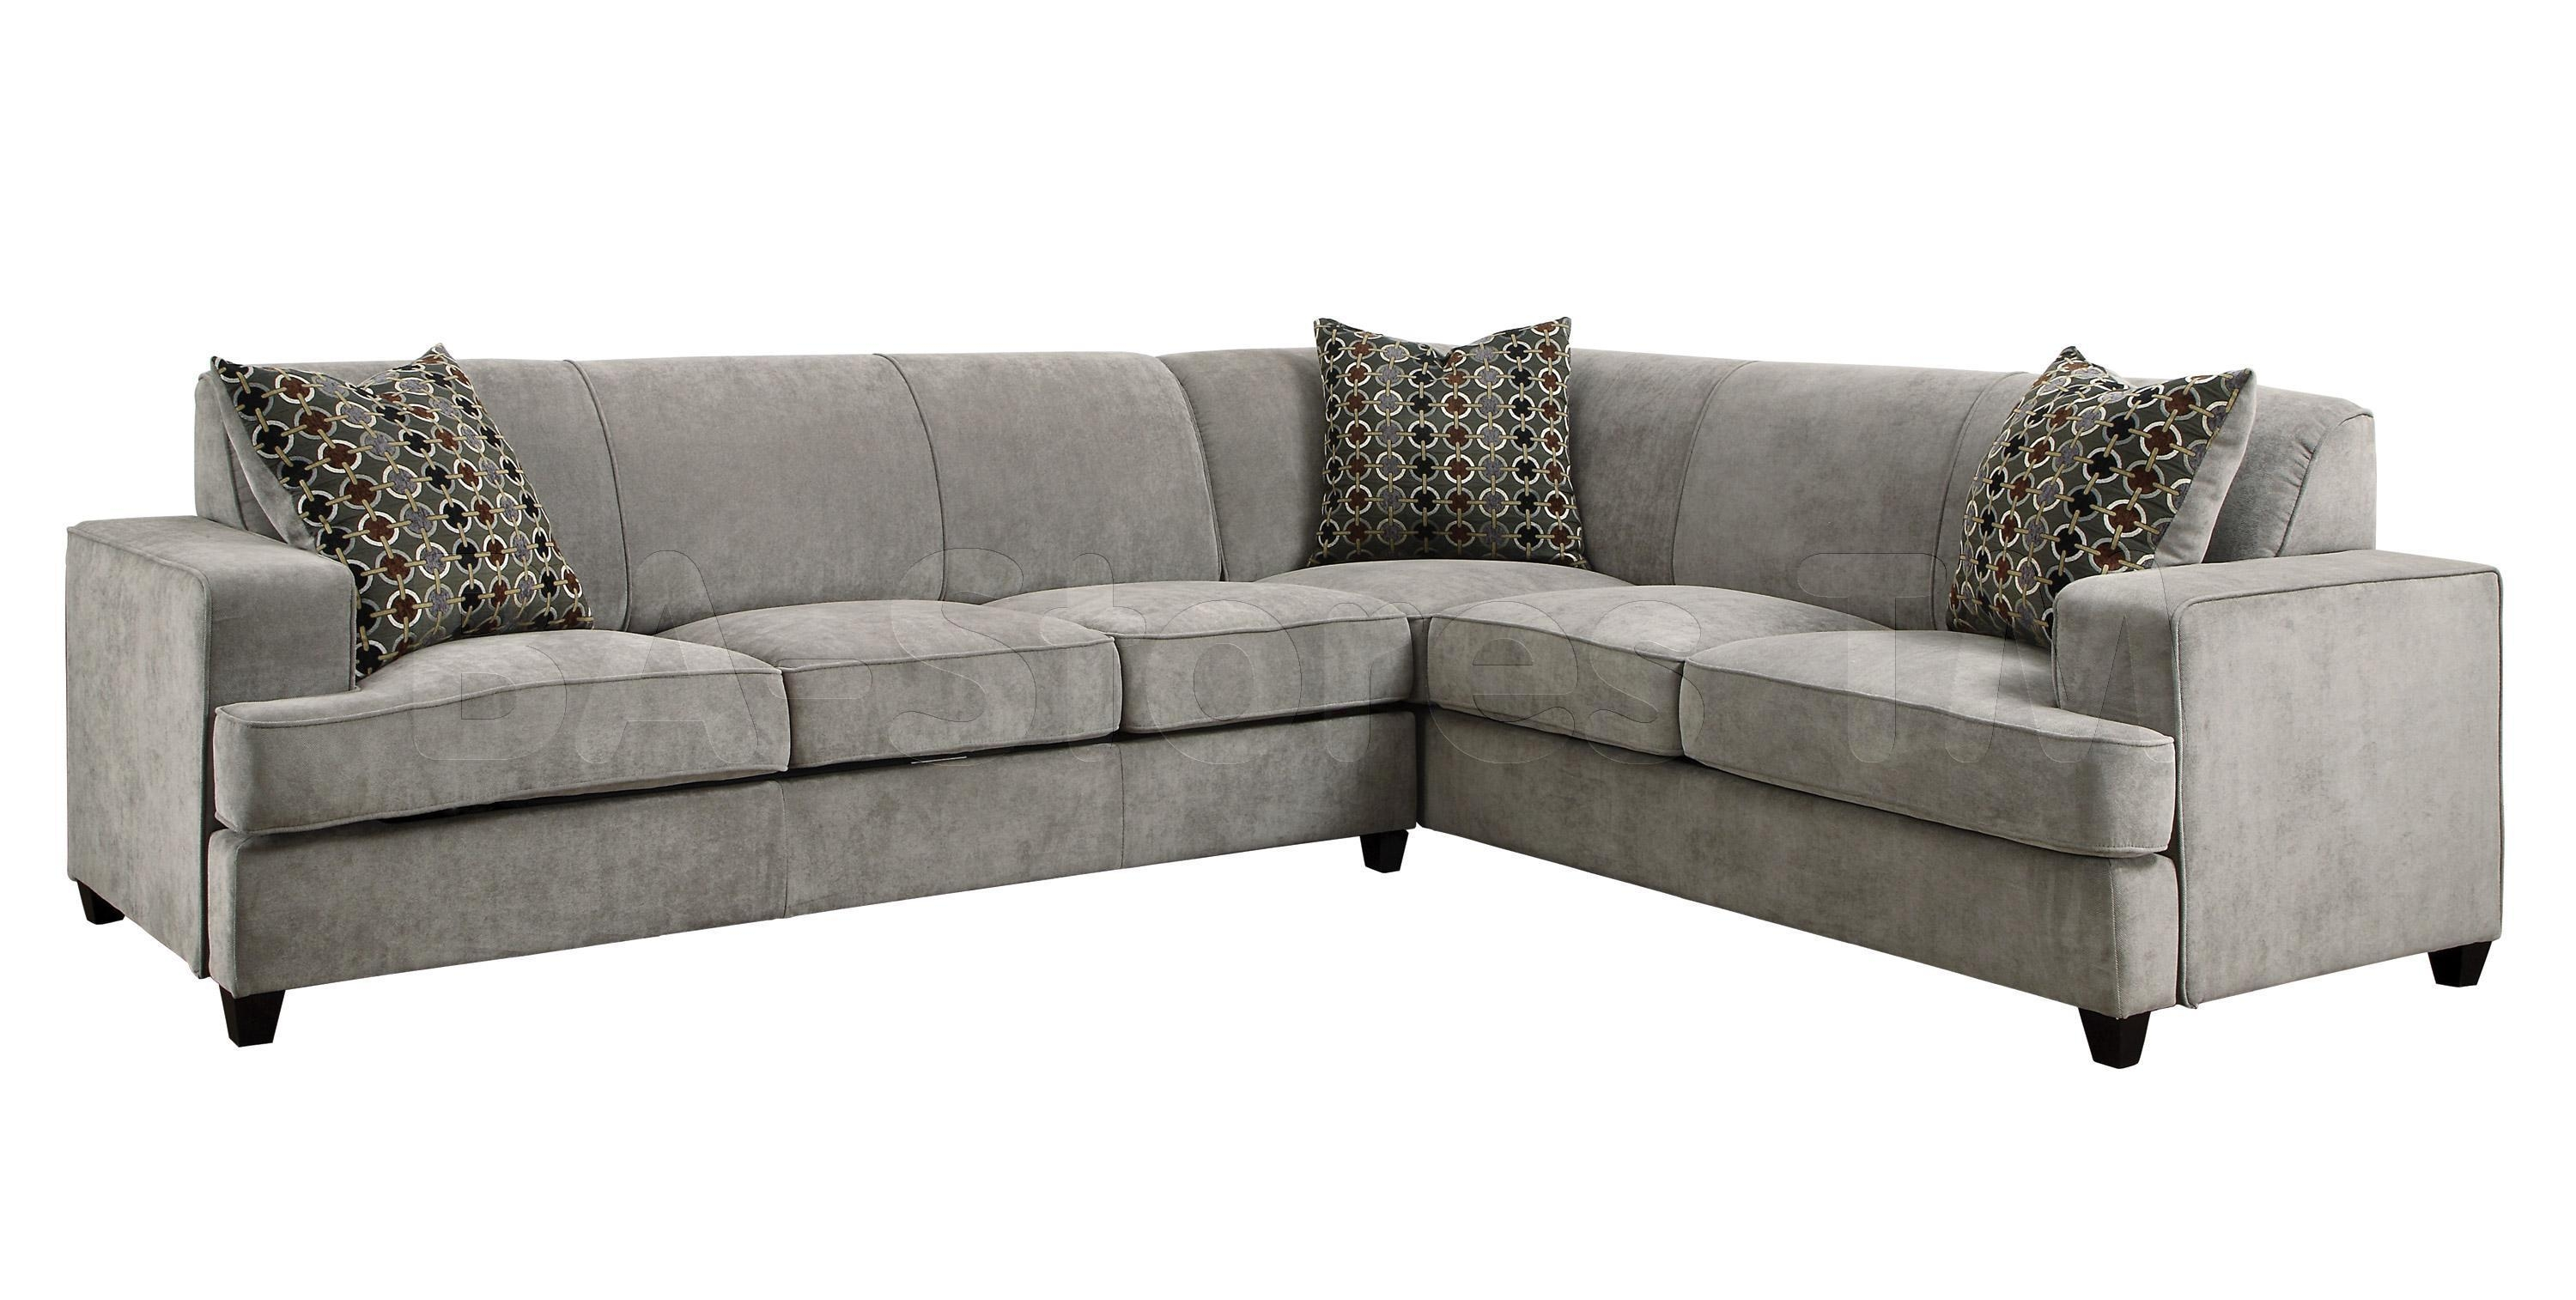 Furniture: Costco Couches | Costco Furniture Sectional | Costco With Sectional Sofa Beds (View 18 of 20)